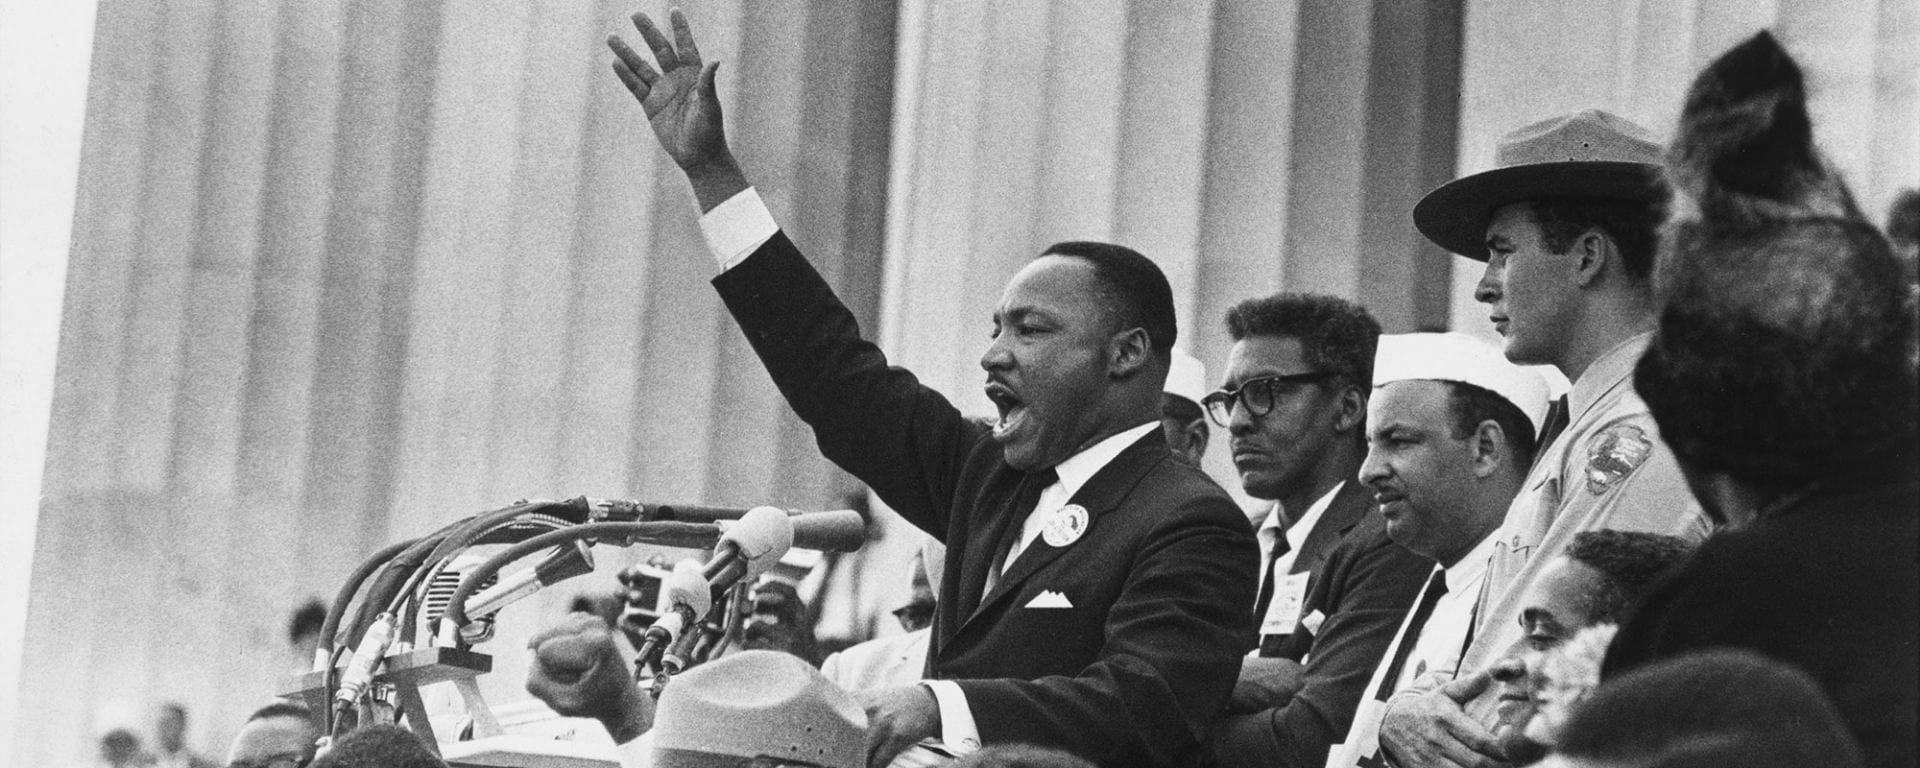 mlk speech header